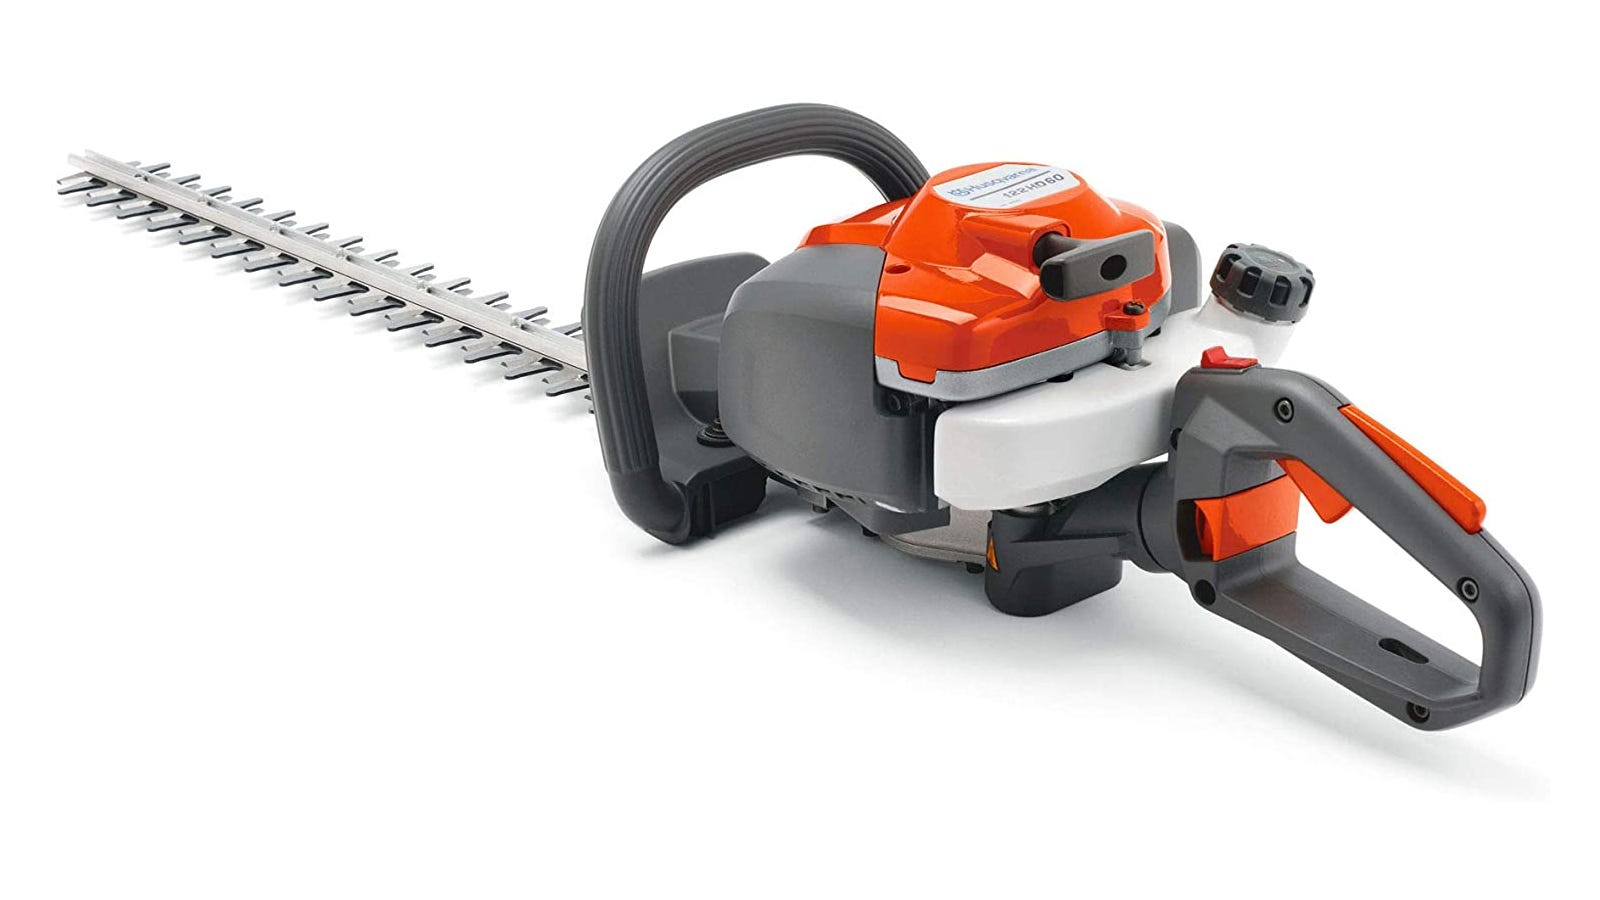 Orange and gray gas-powered hedge trimmer with 23.7-inch blade